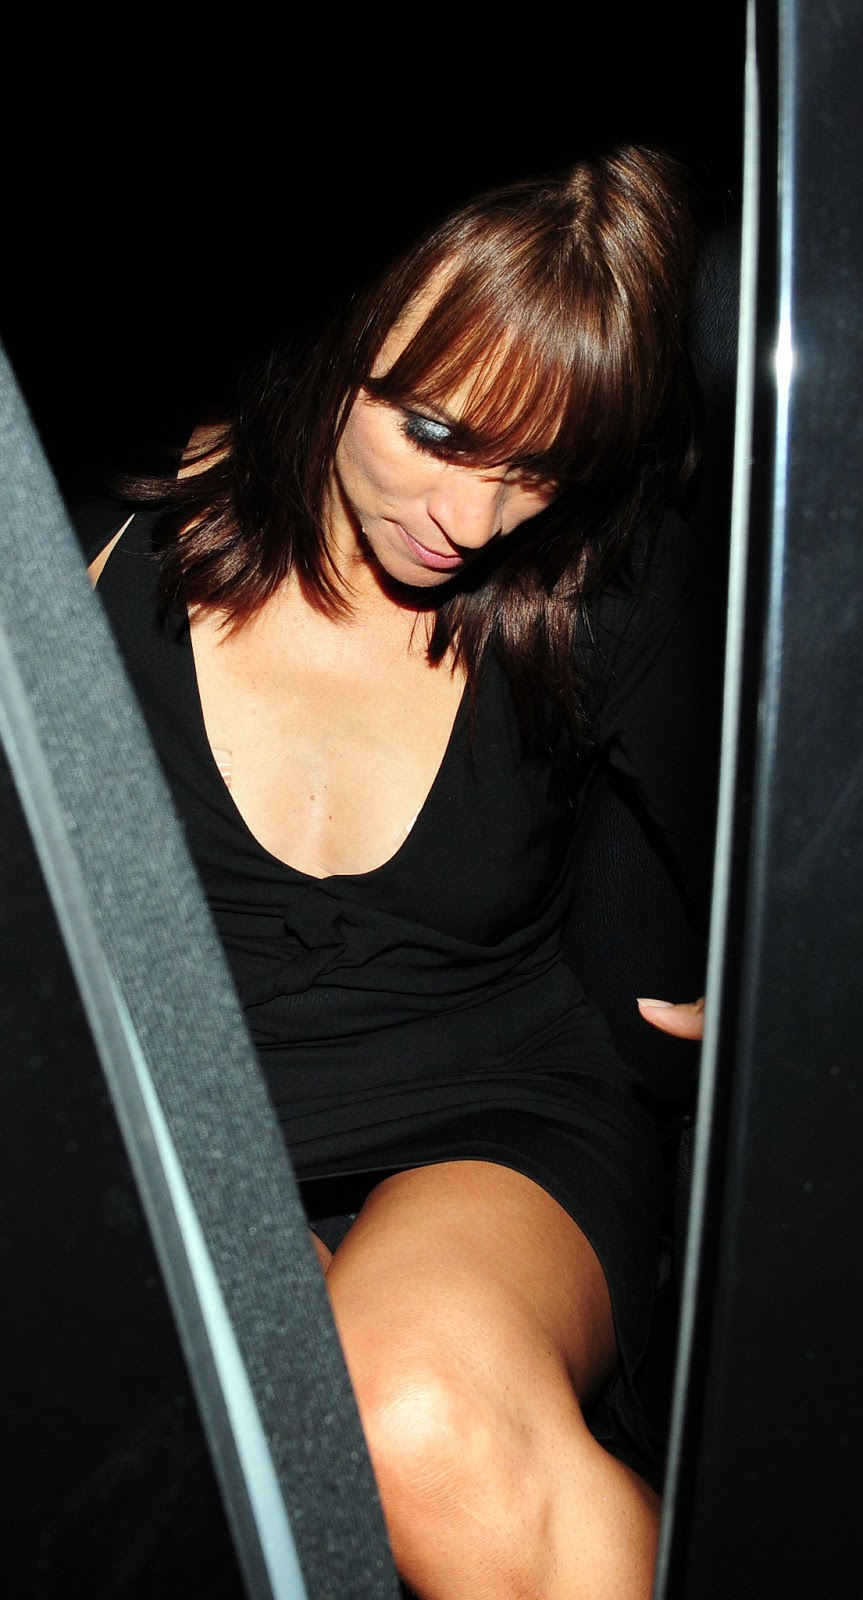 Loose Women Upskirt 41